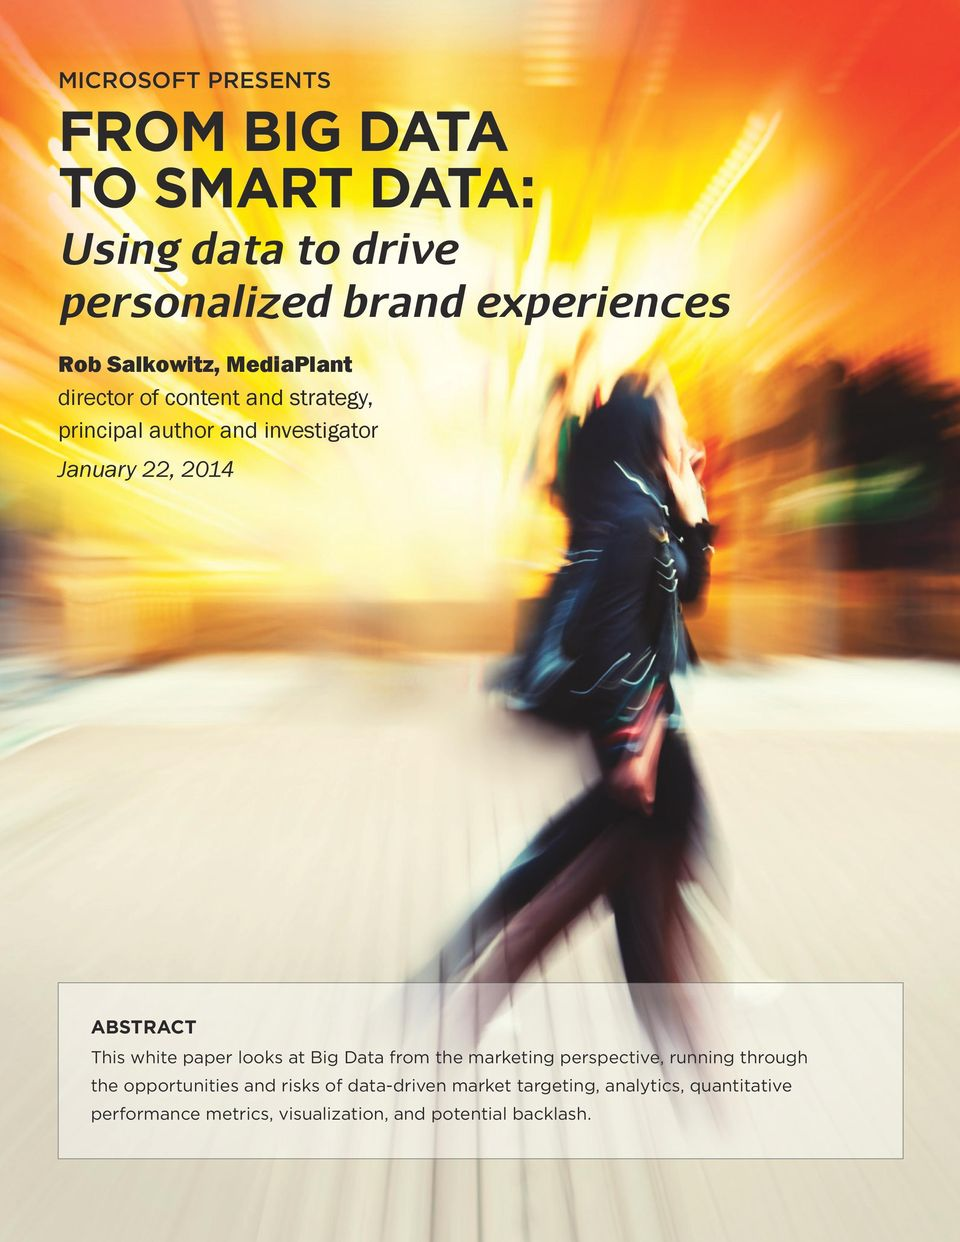 ABSTRACT This white paper looks at Big Data from the marketing perspective, running through the opportunities